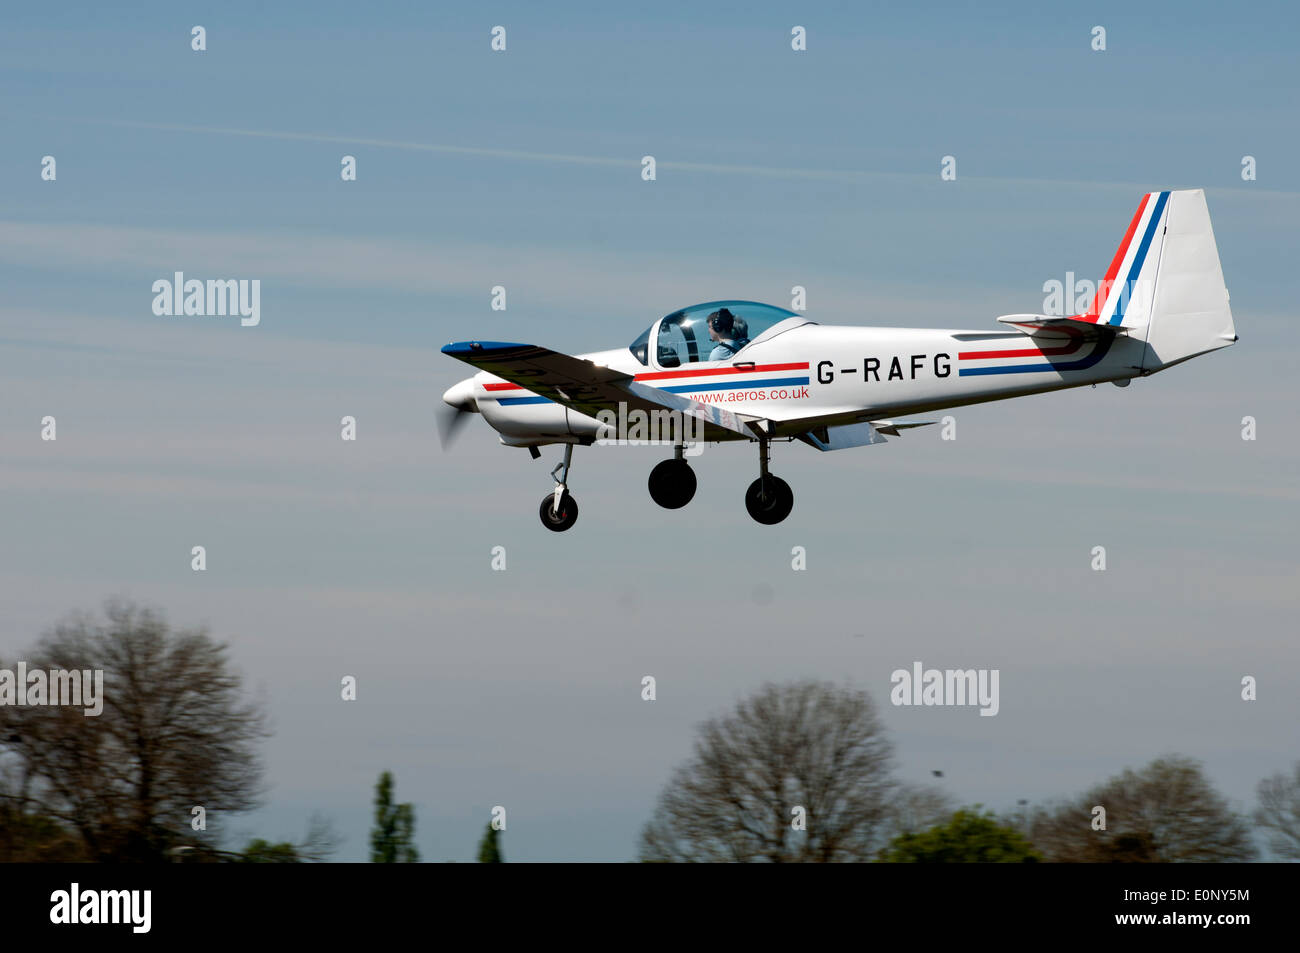 Slingsby Firefly T67C aircraft - Stock Image